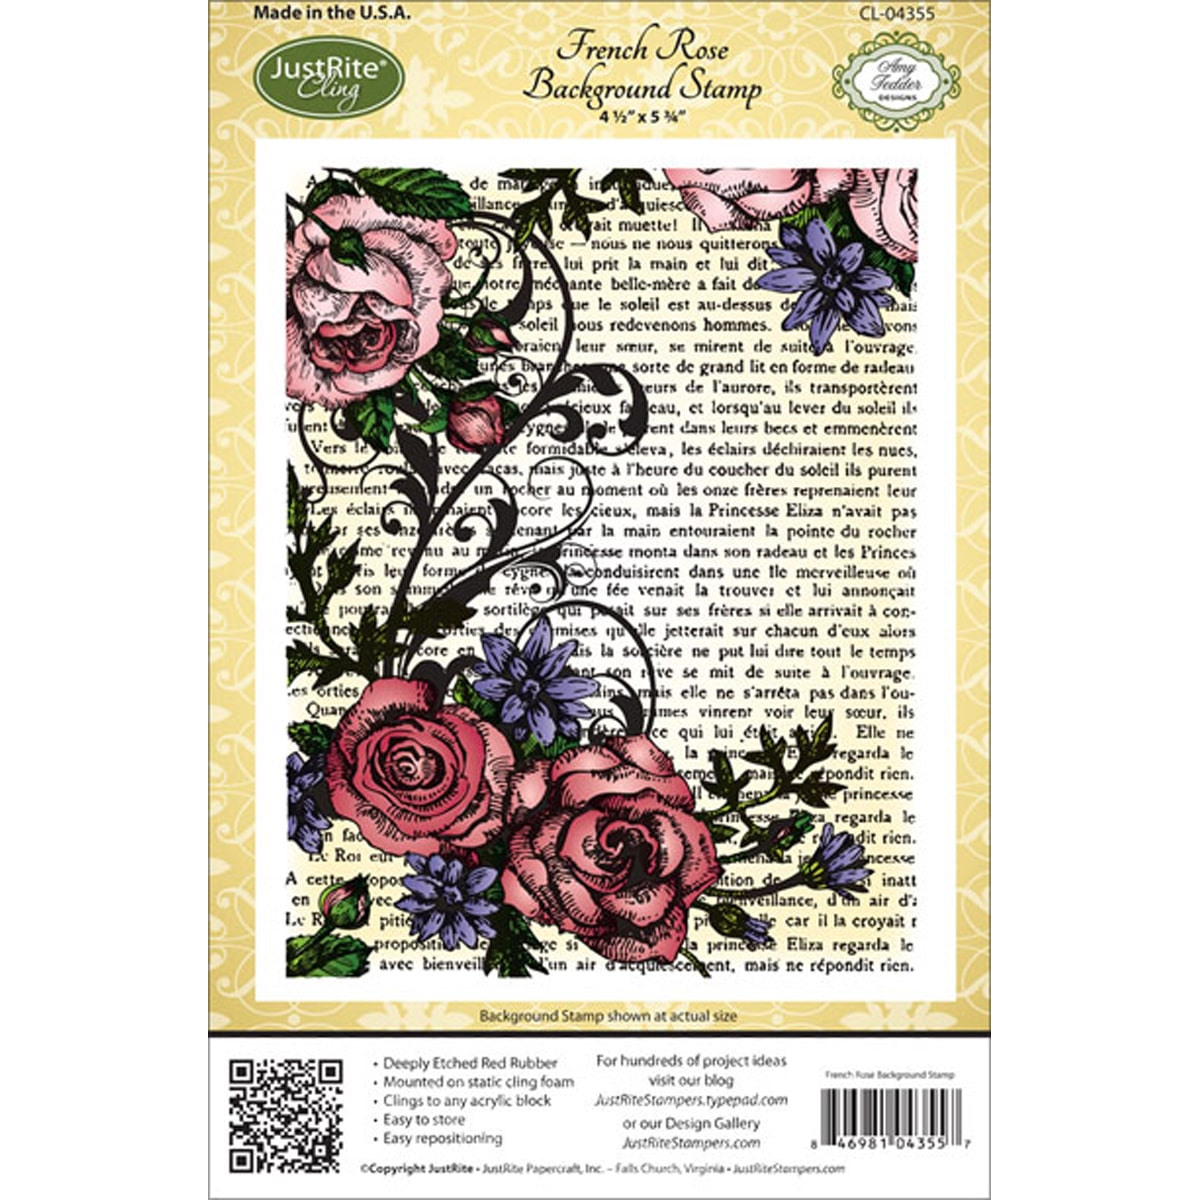 Justrite Papercraft Cling Background Stamp, 4.5 by 5.75-Inch, French Rose Multi-Colored